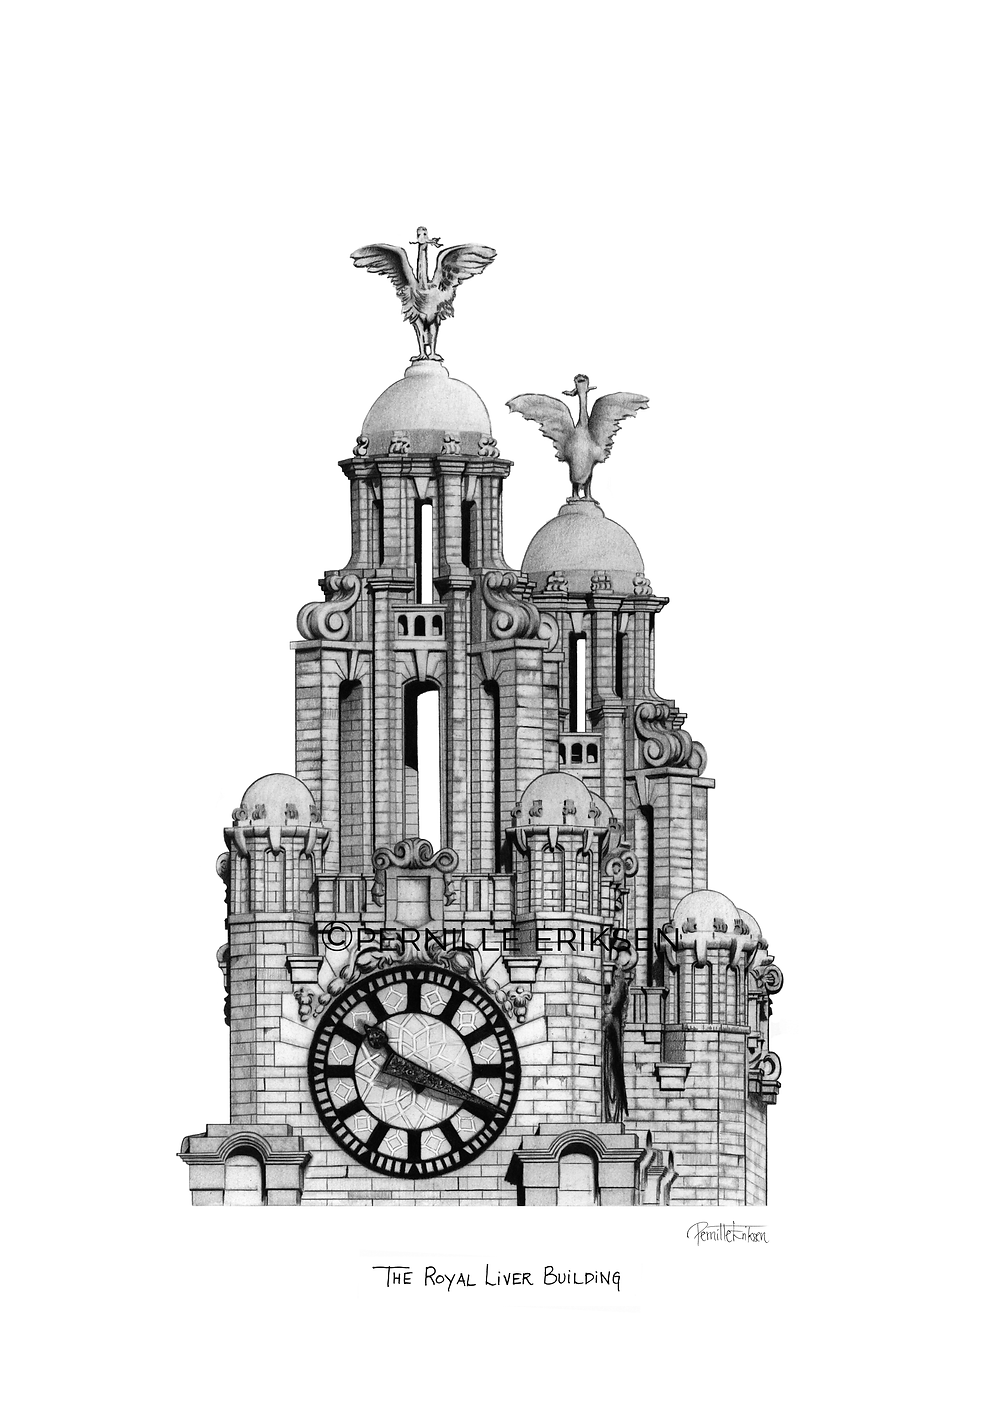 Liverpool pencil drawing featuring my architectural illustration of the Royal Liver Building, one of the Three Graces on Liverpool's waterfront.